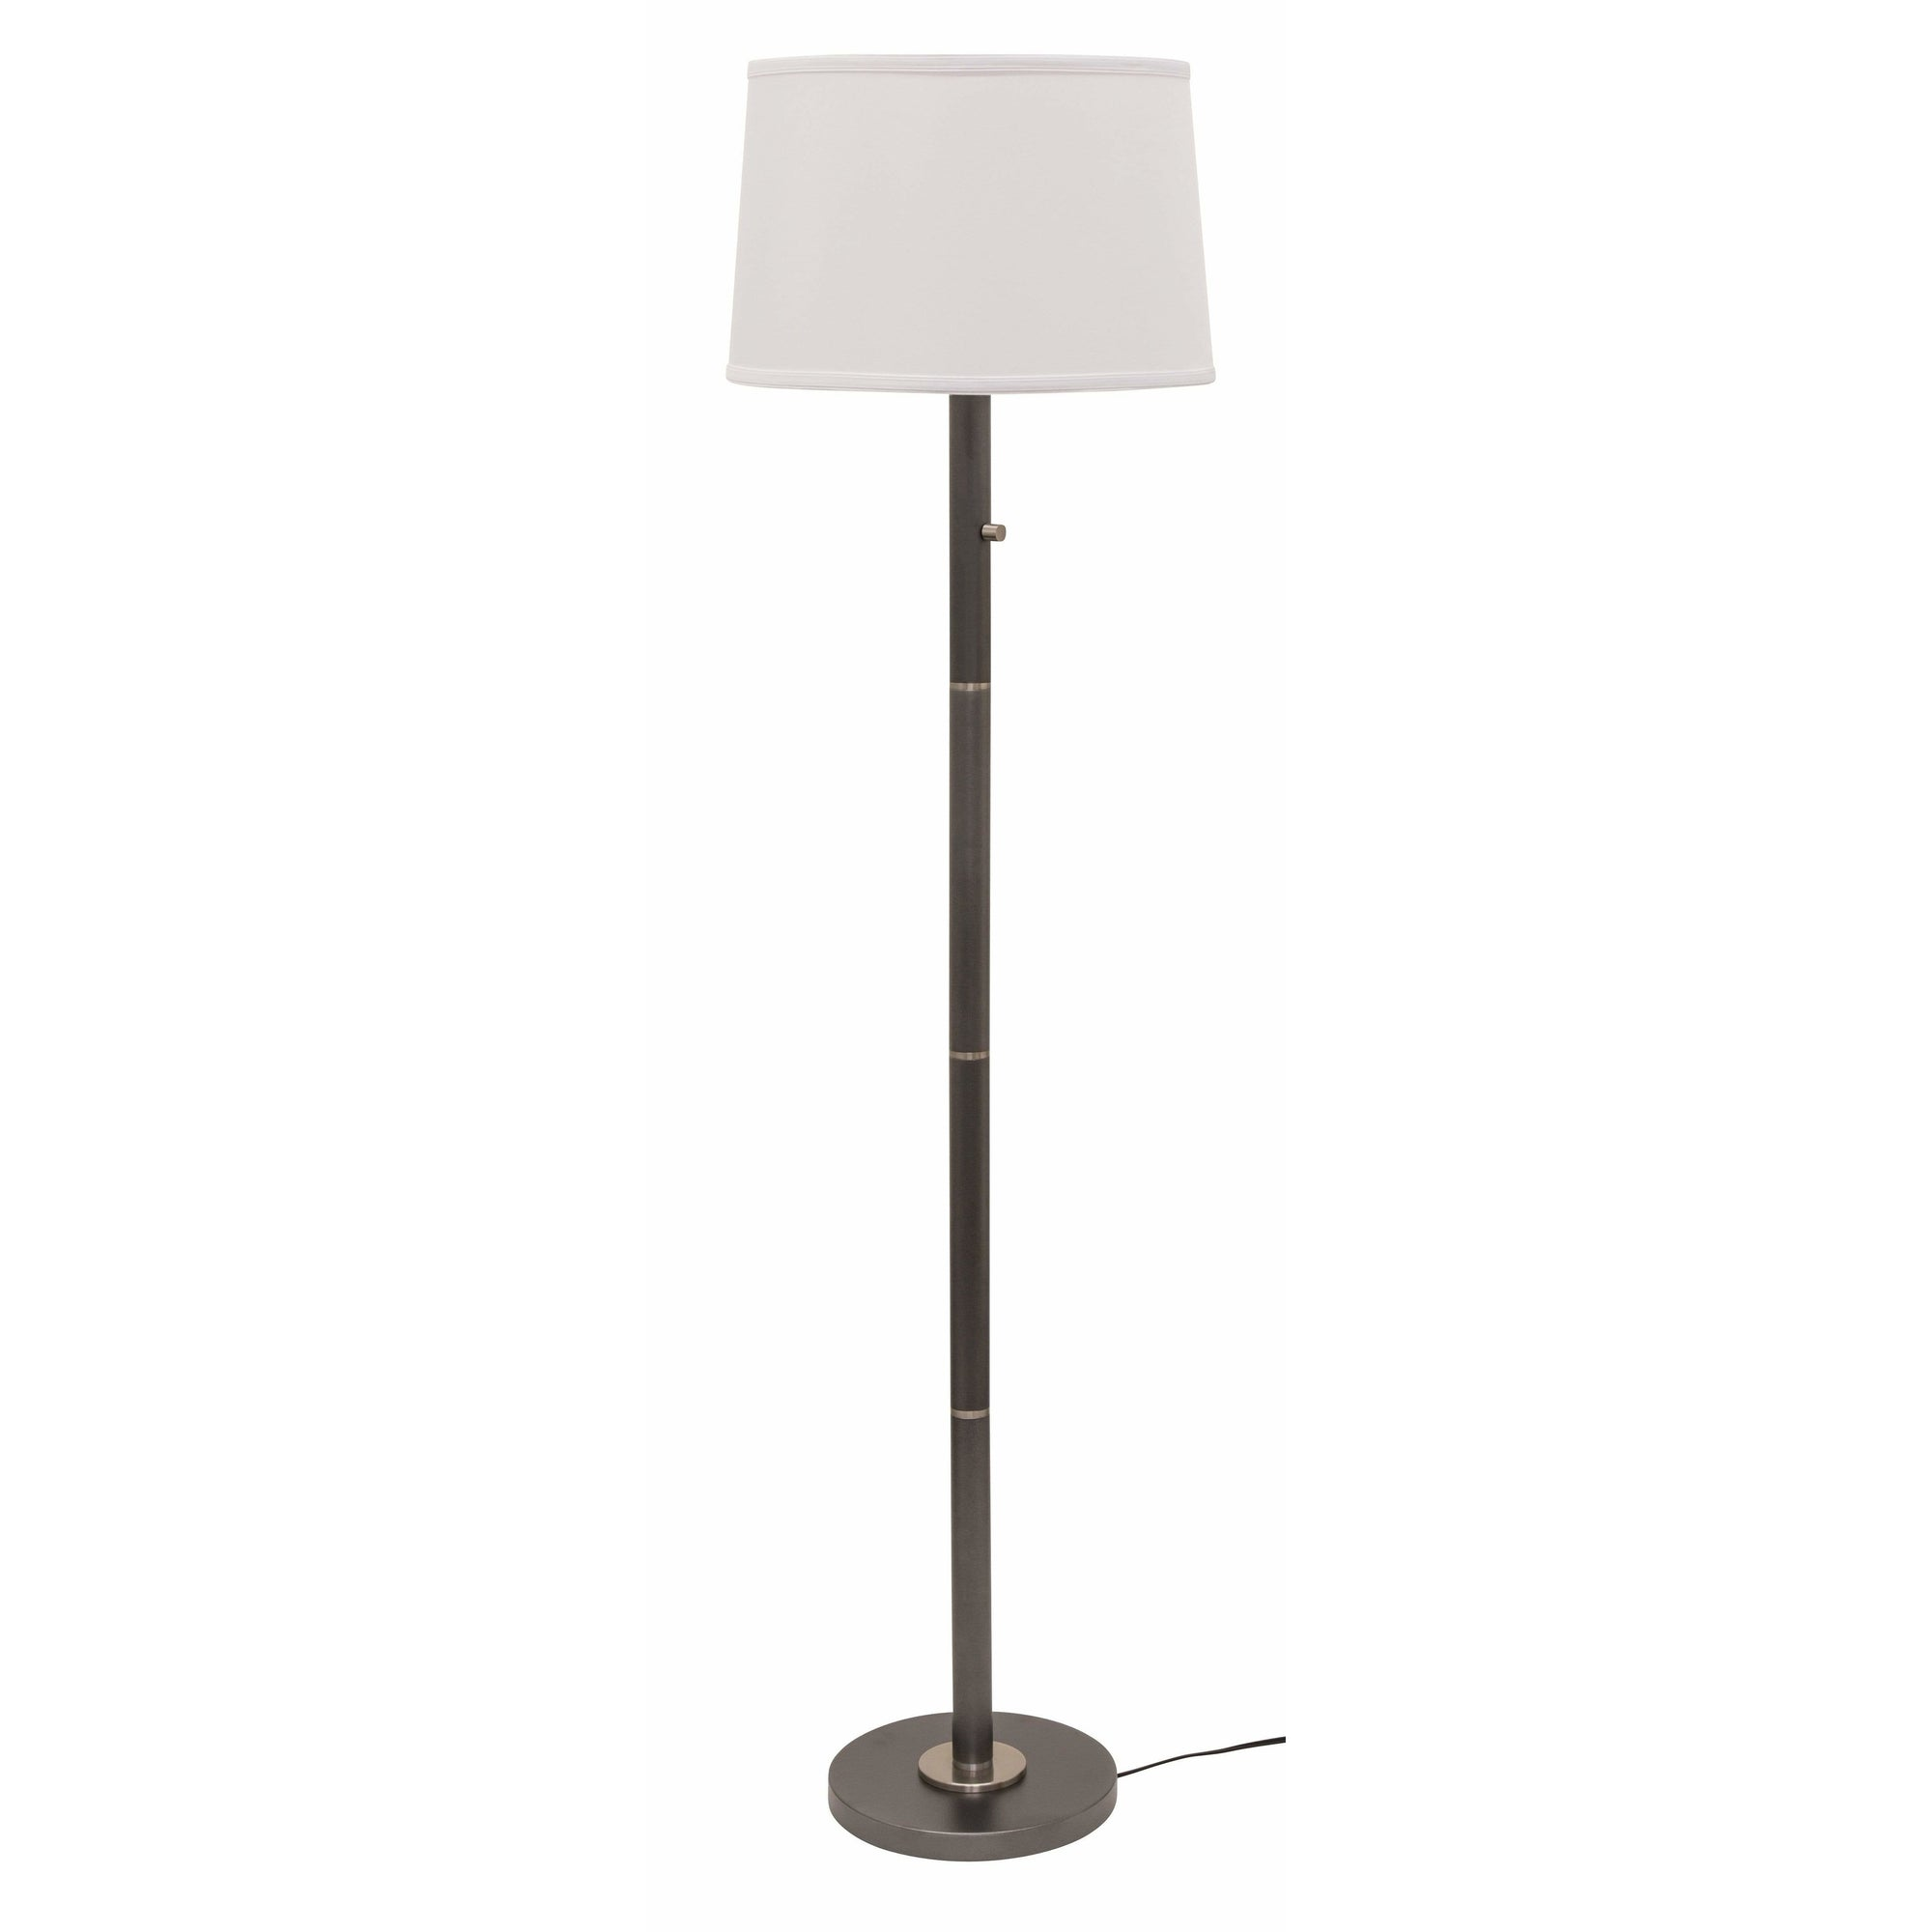 House Of Troy Floor Lamps Rupert Floor Lamp by House Of Troy RU703-GT